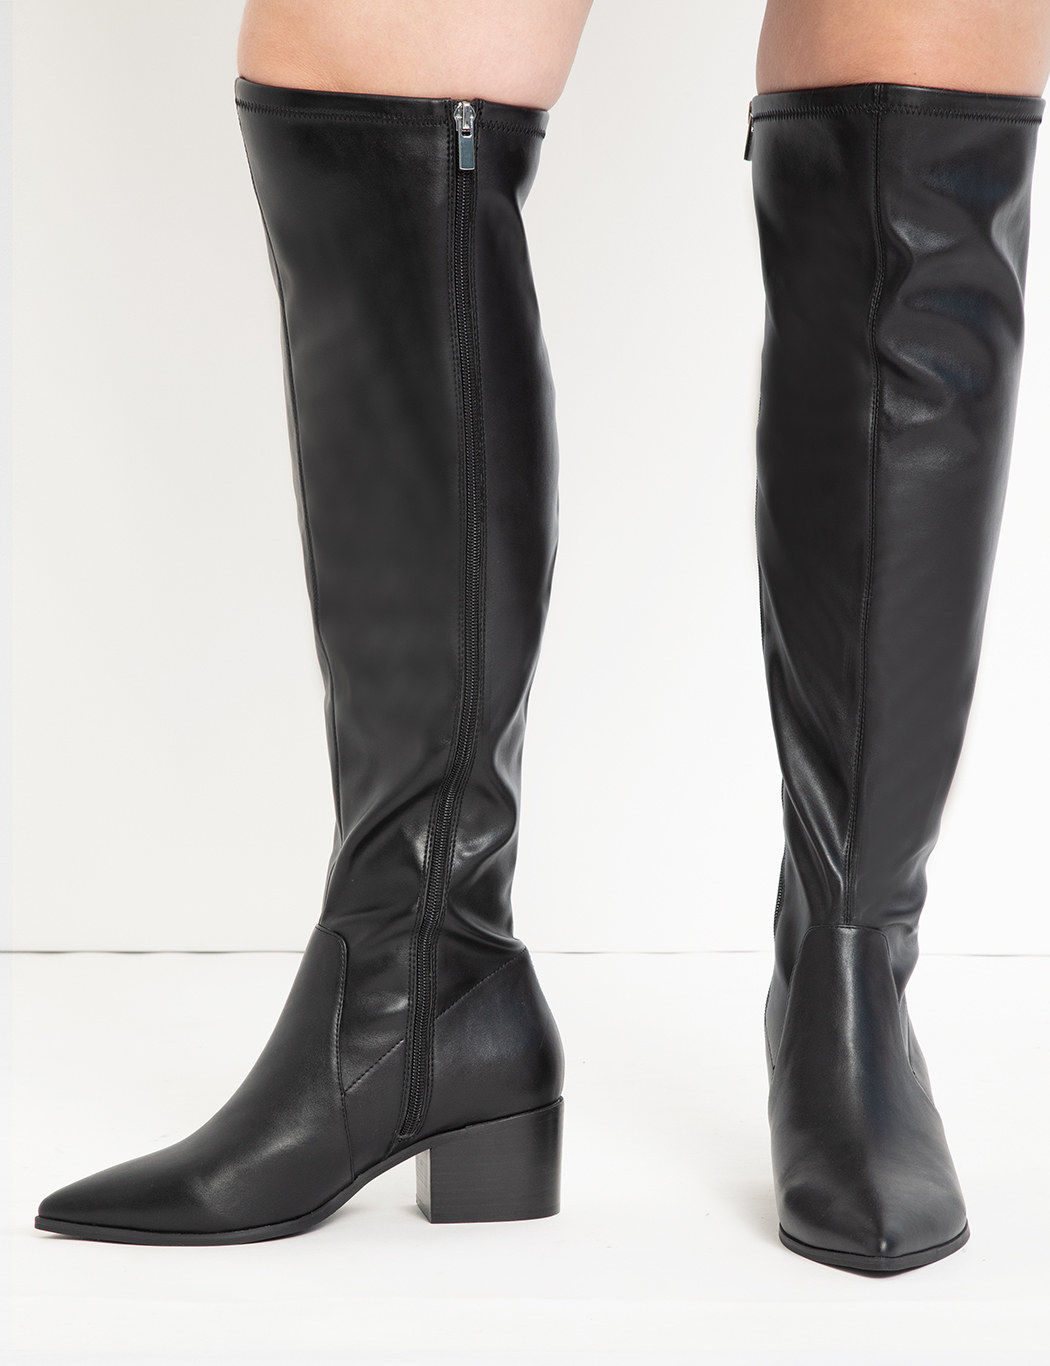 model wearing black pointed toe boots with side zipper